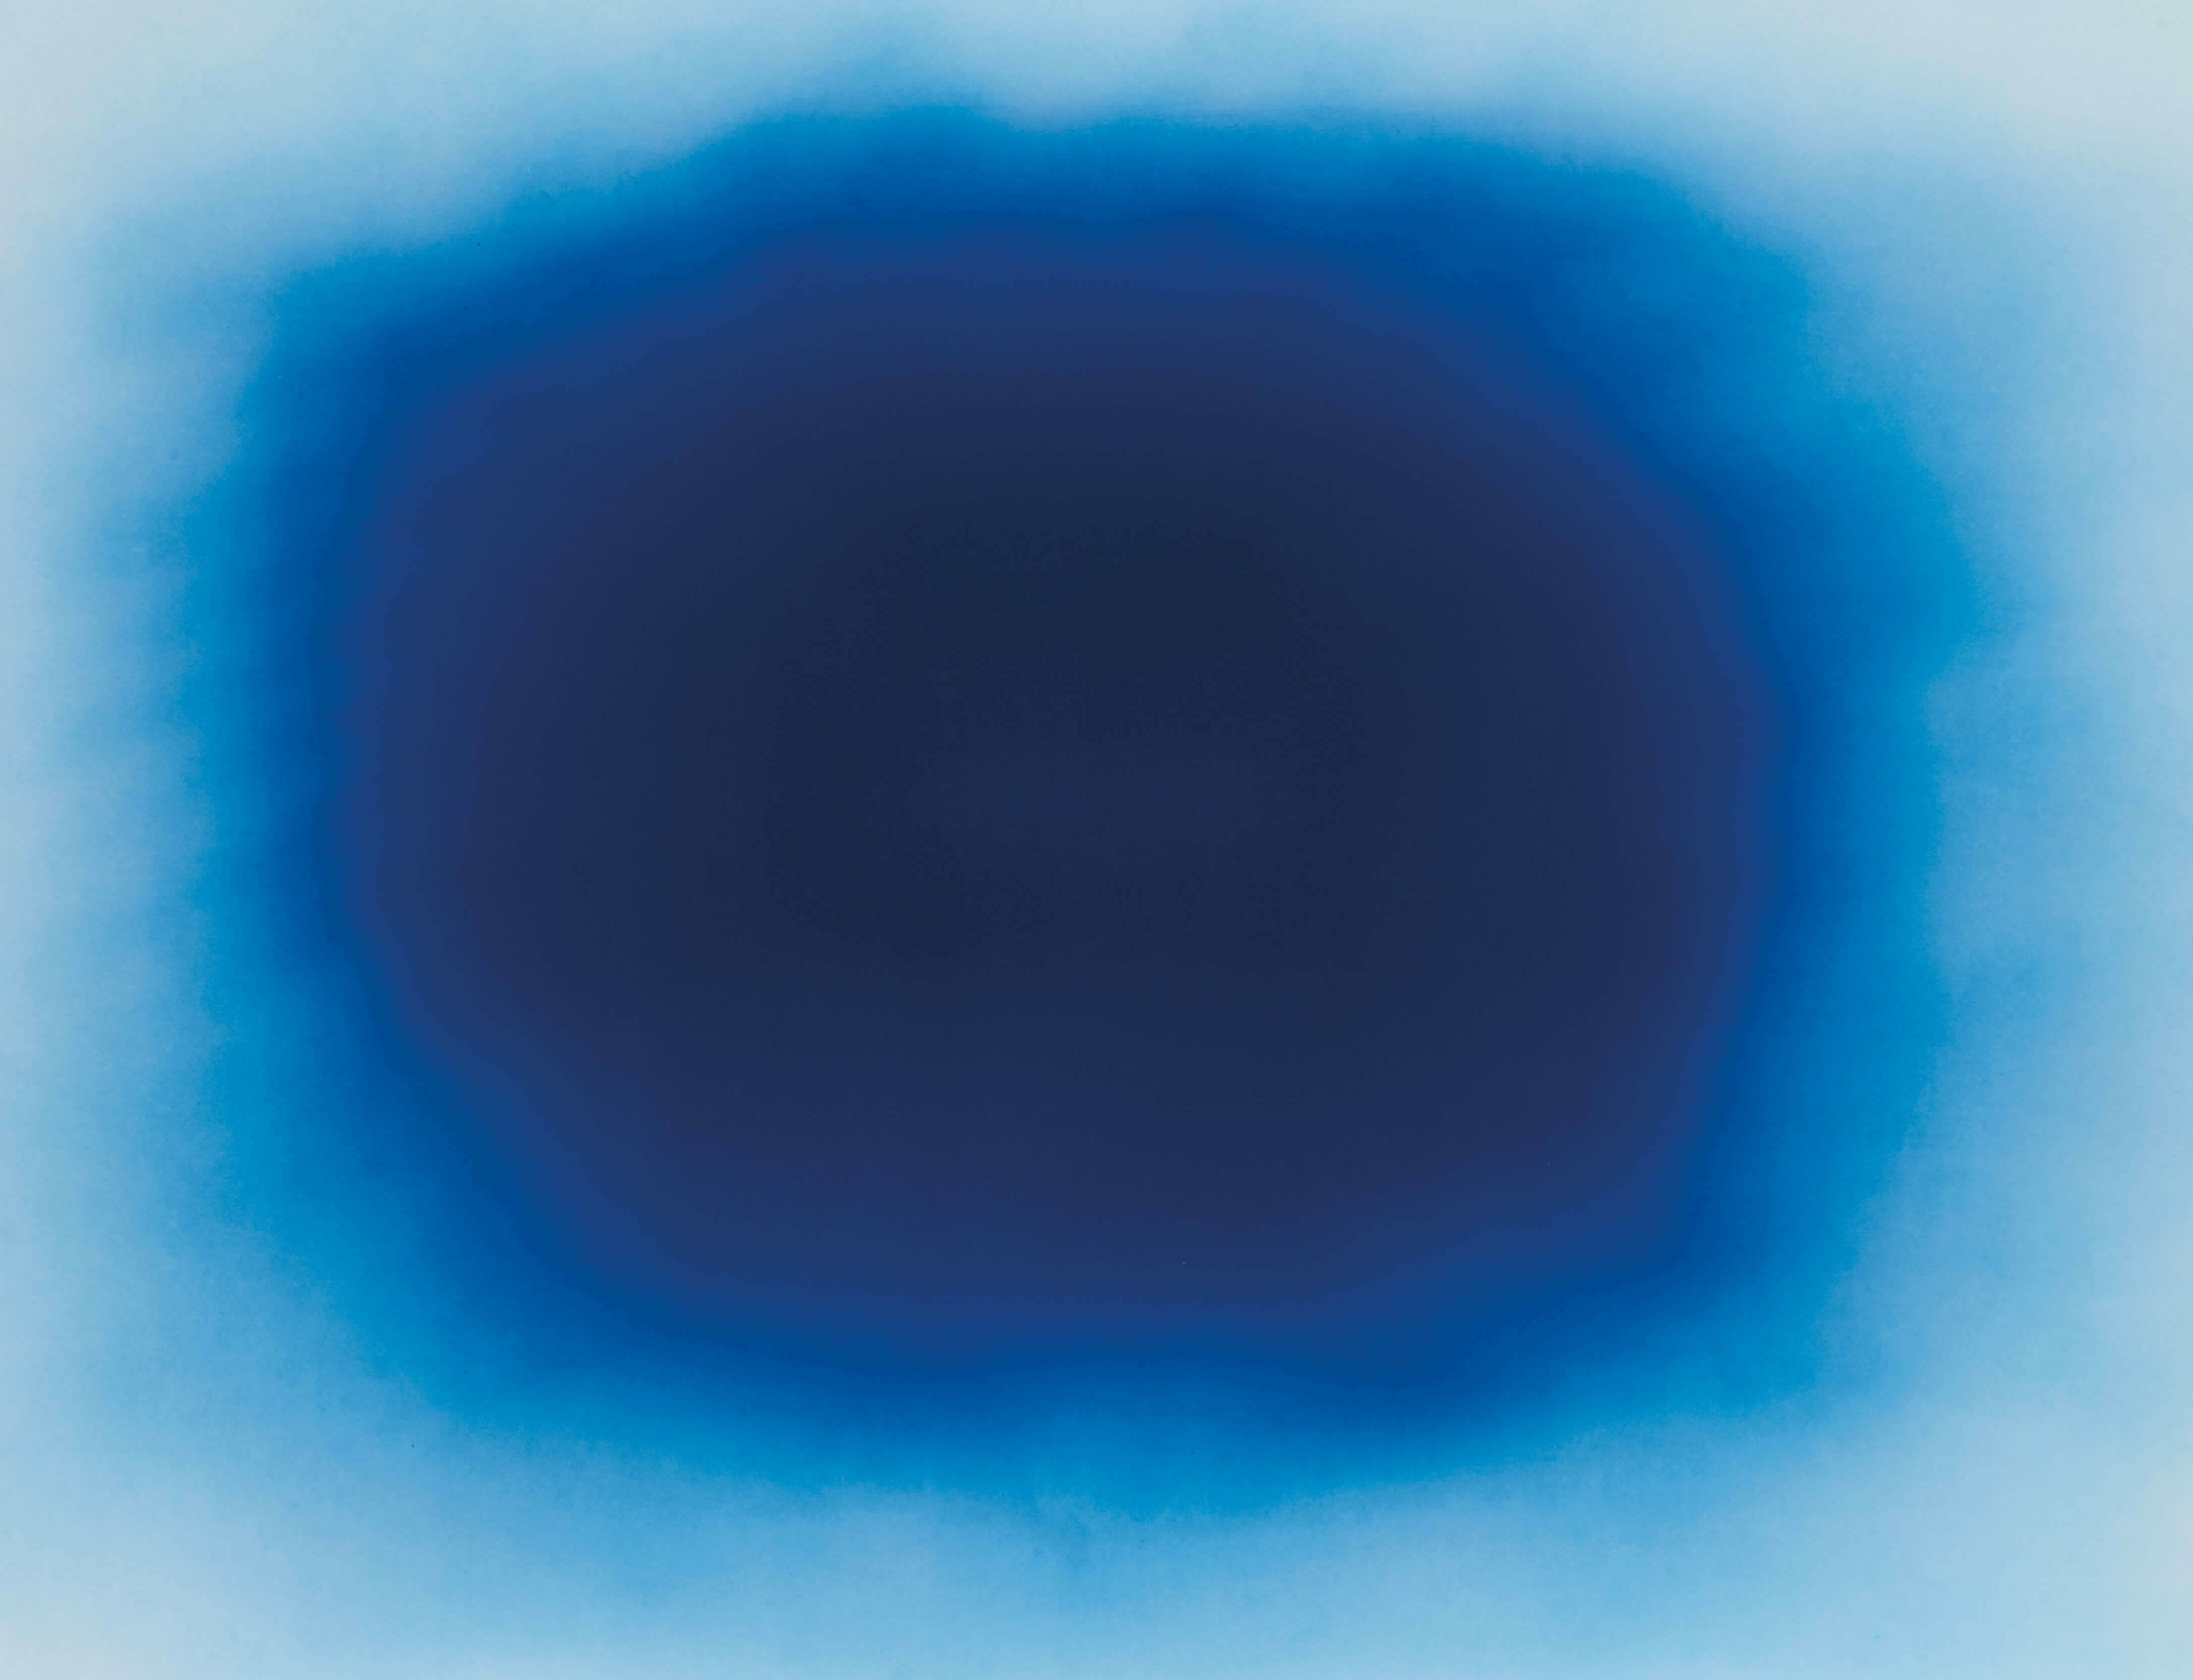 Editions by Anish Kapoor and Richard Wentworth raising funds for Hospital Rooms charity